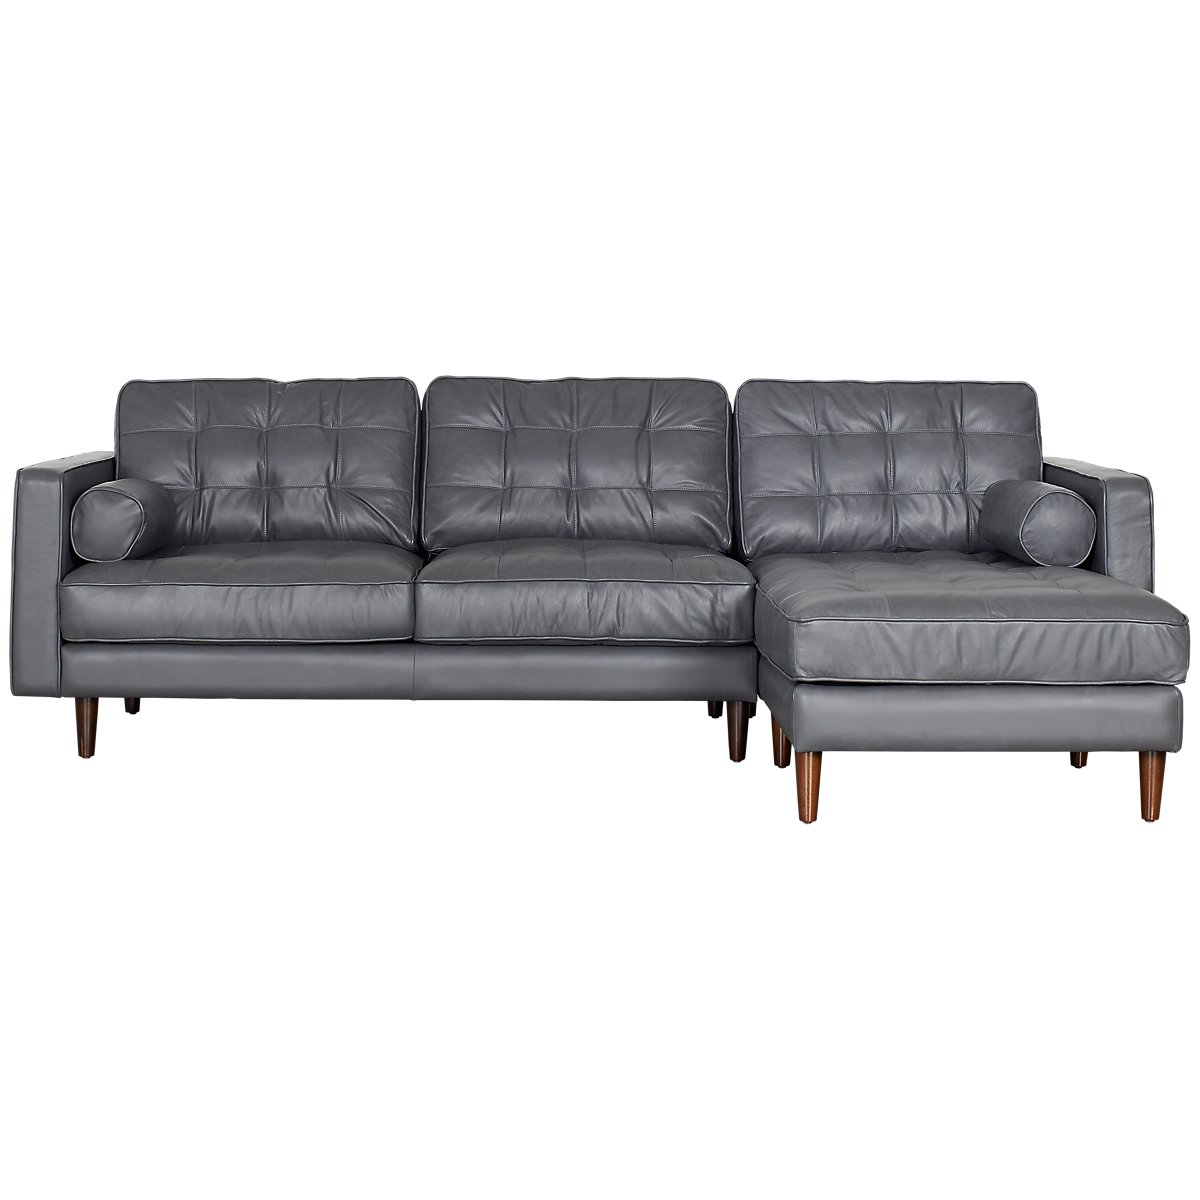 modena modern model furniture rigged leather obj left sofa max chaise models sectional rh arm chesterfield